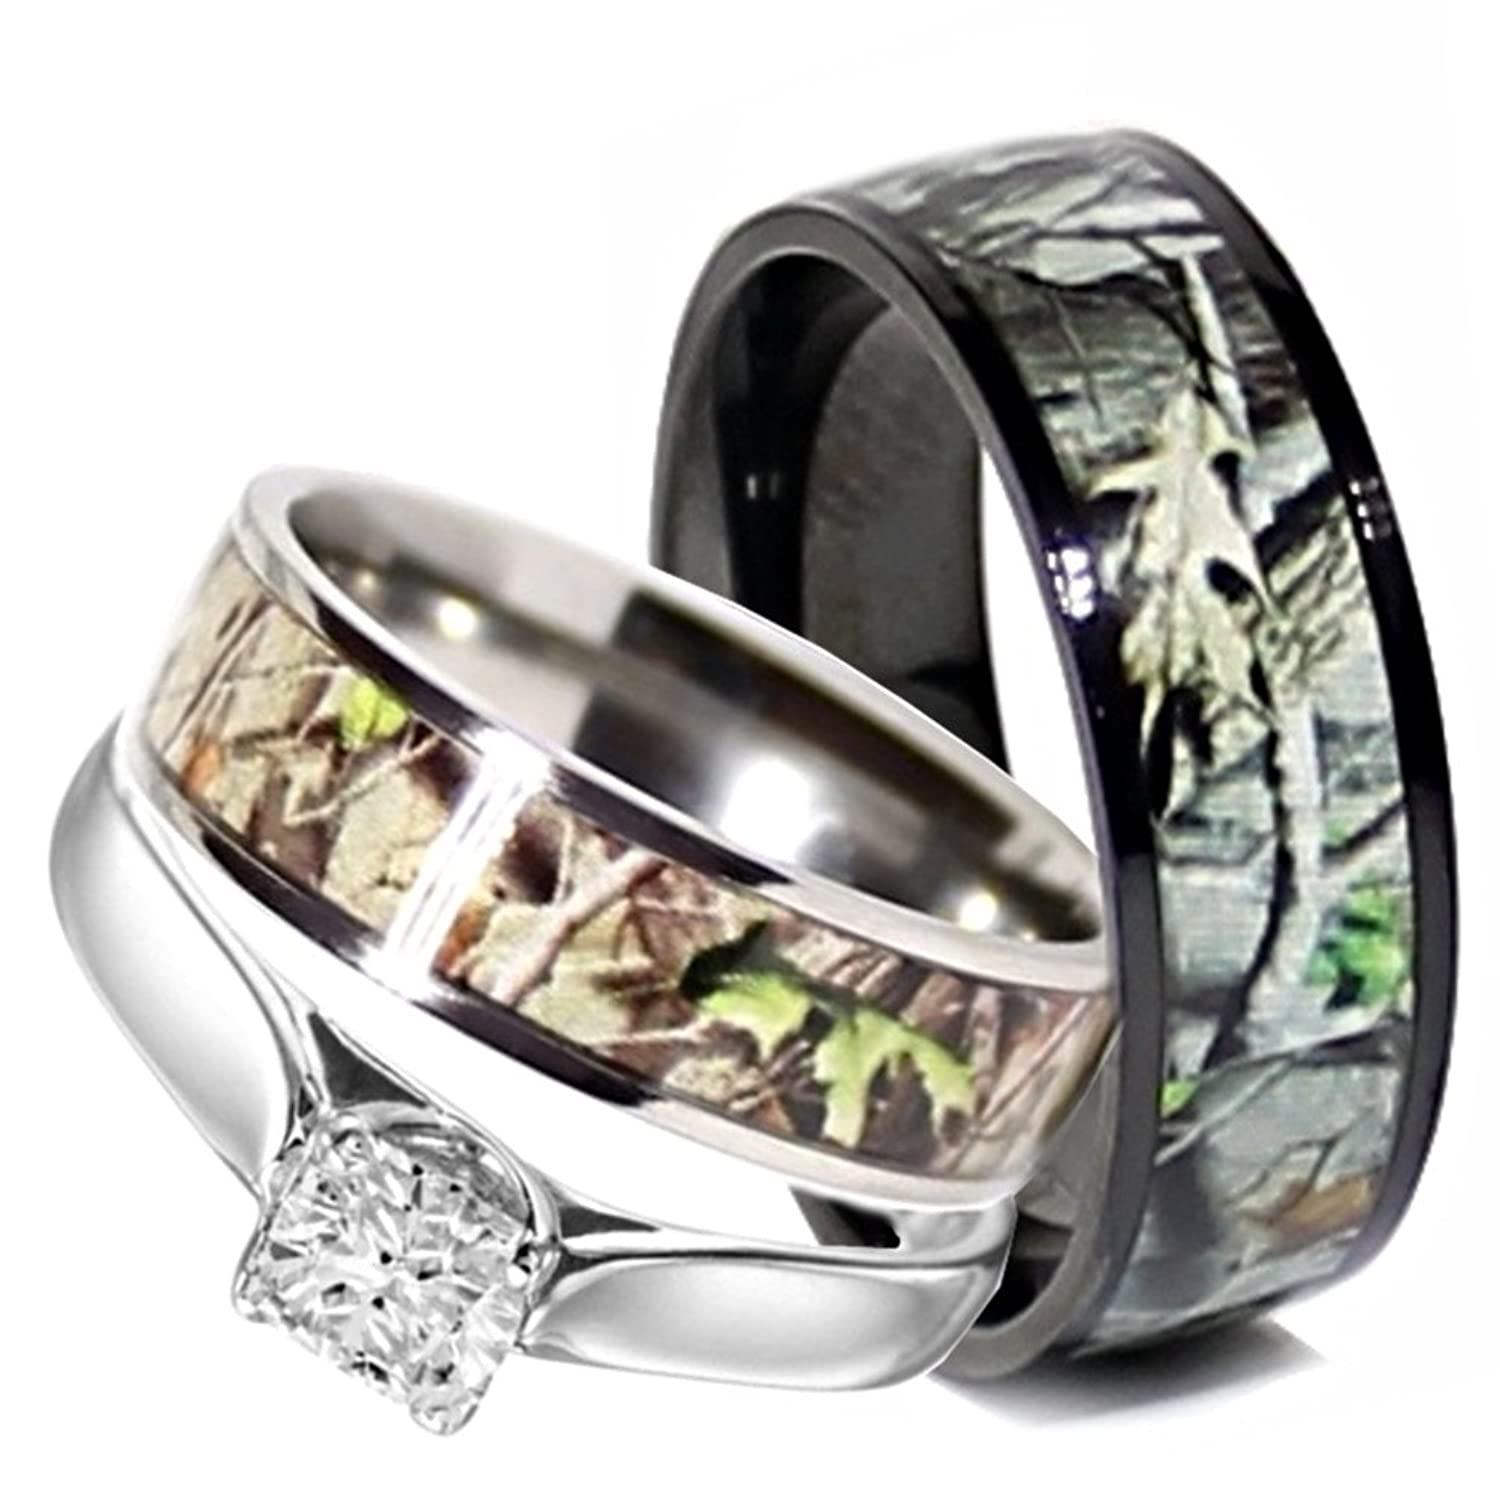 amazoncom camo wedding rings set his and hers 3 rings set sterling silver and titanium size men 10 women 10 jewelry - Wedding Rings Sets For Her